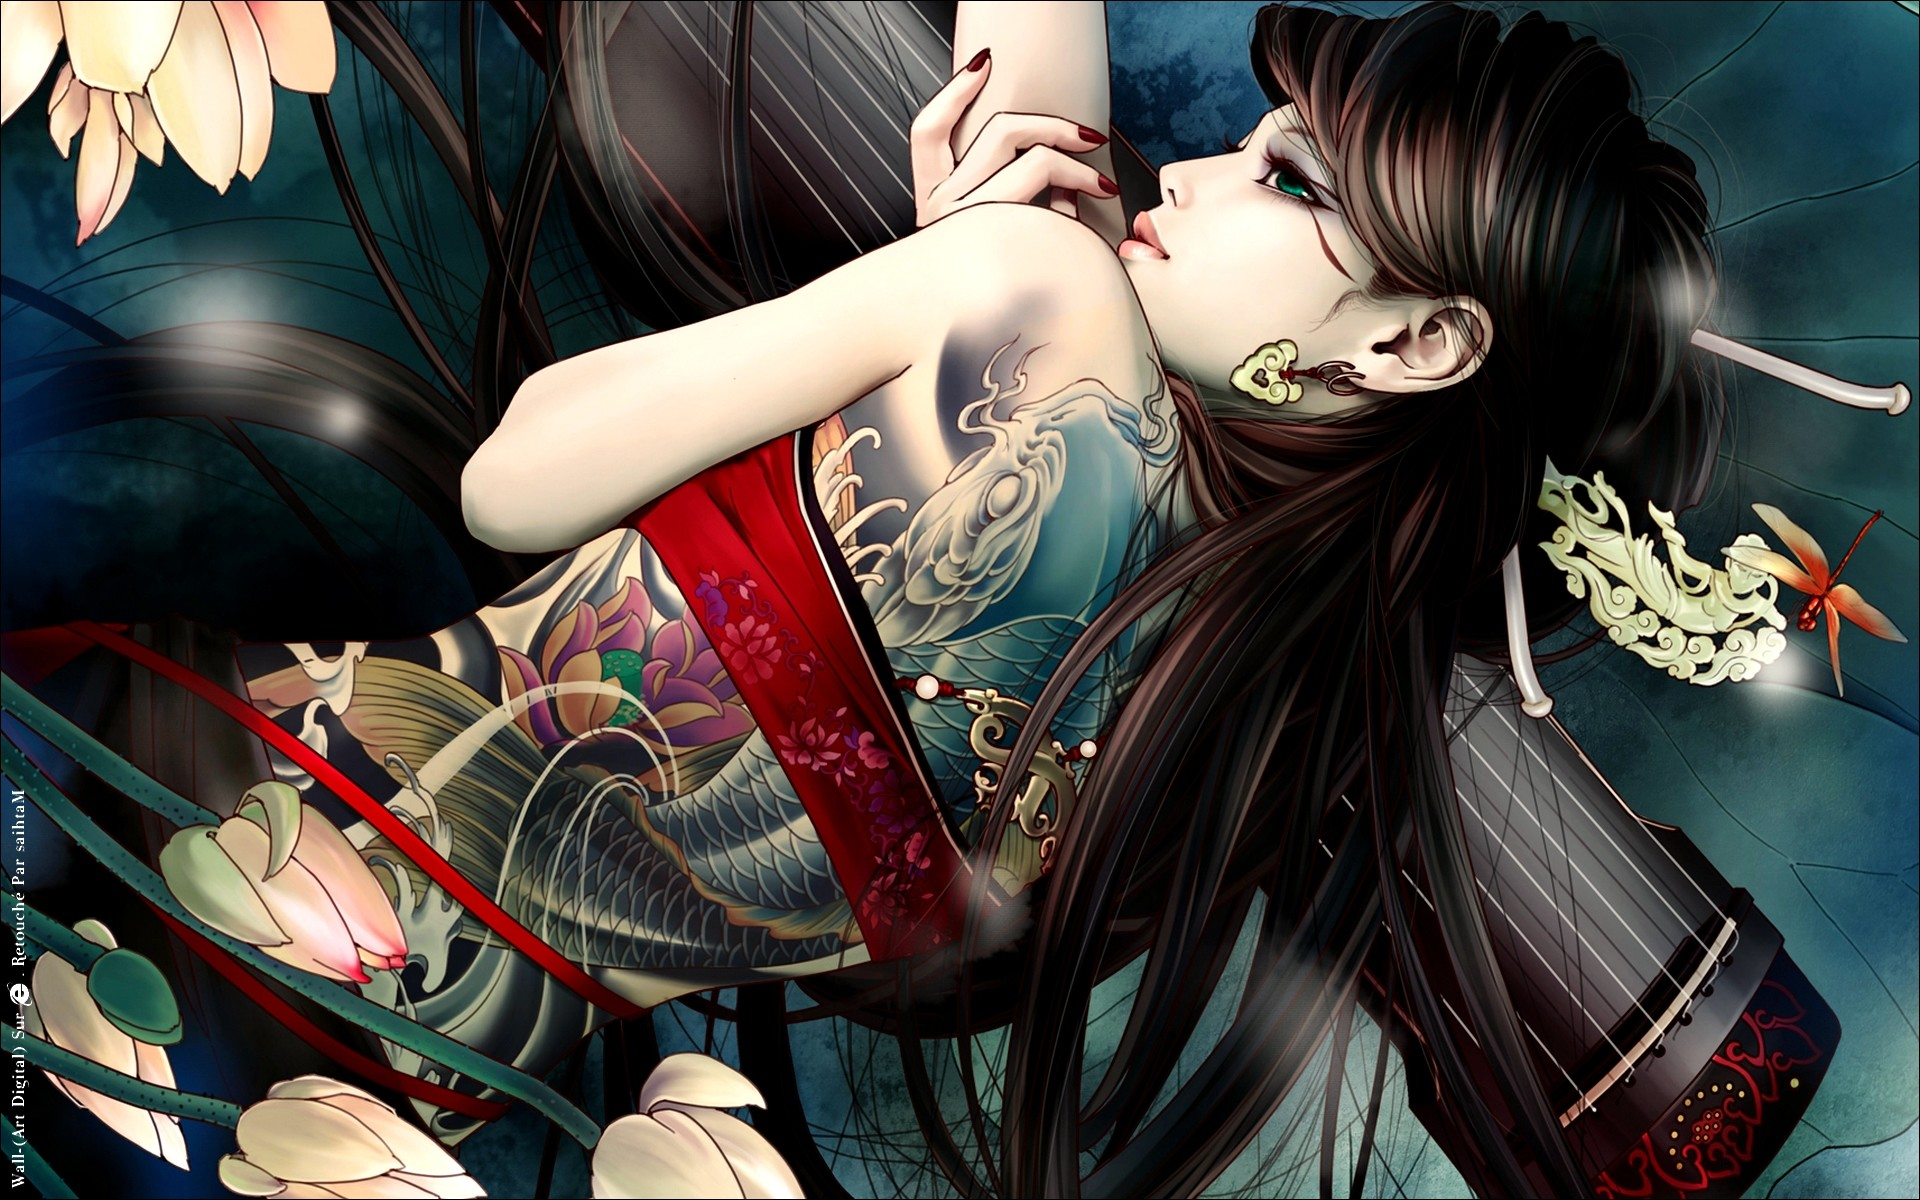 Res: 1920x1200, Awesome Japanese Tattoo Girl Wallpaper 67 to tattoo arm sleeve with Japanese  Tattoo Girl Wallpaper